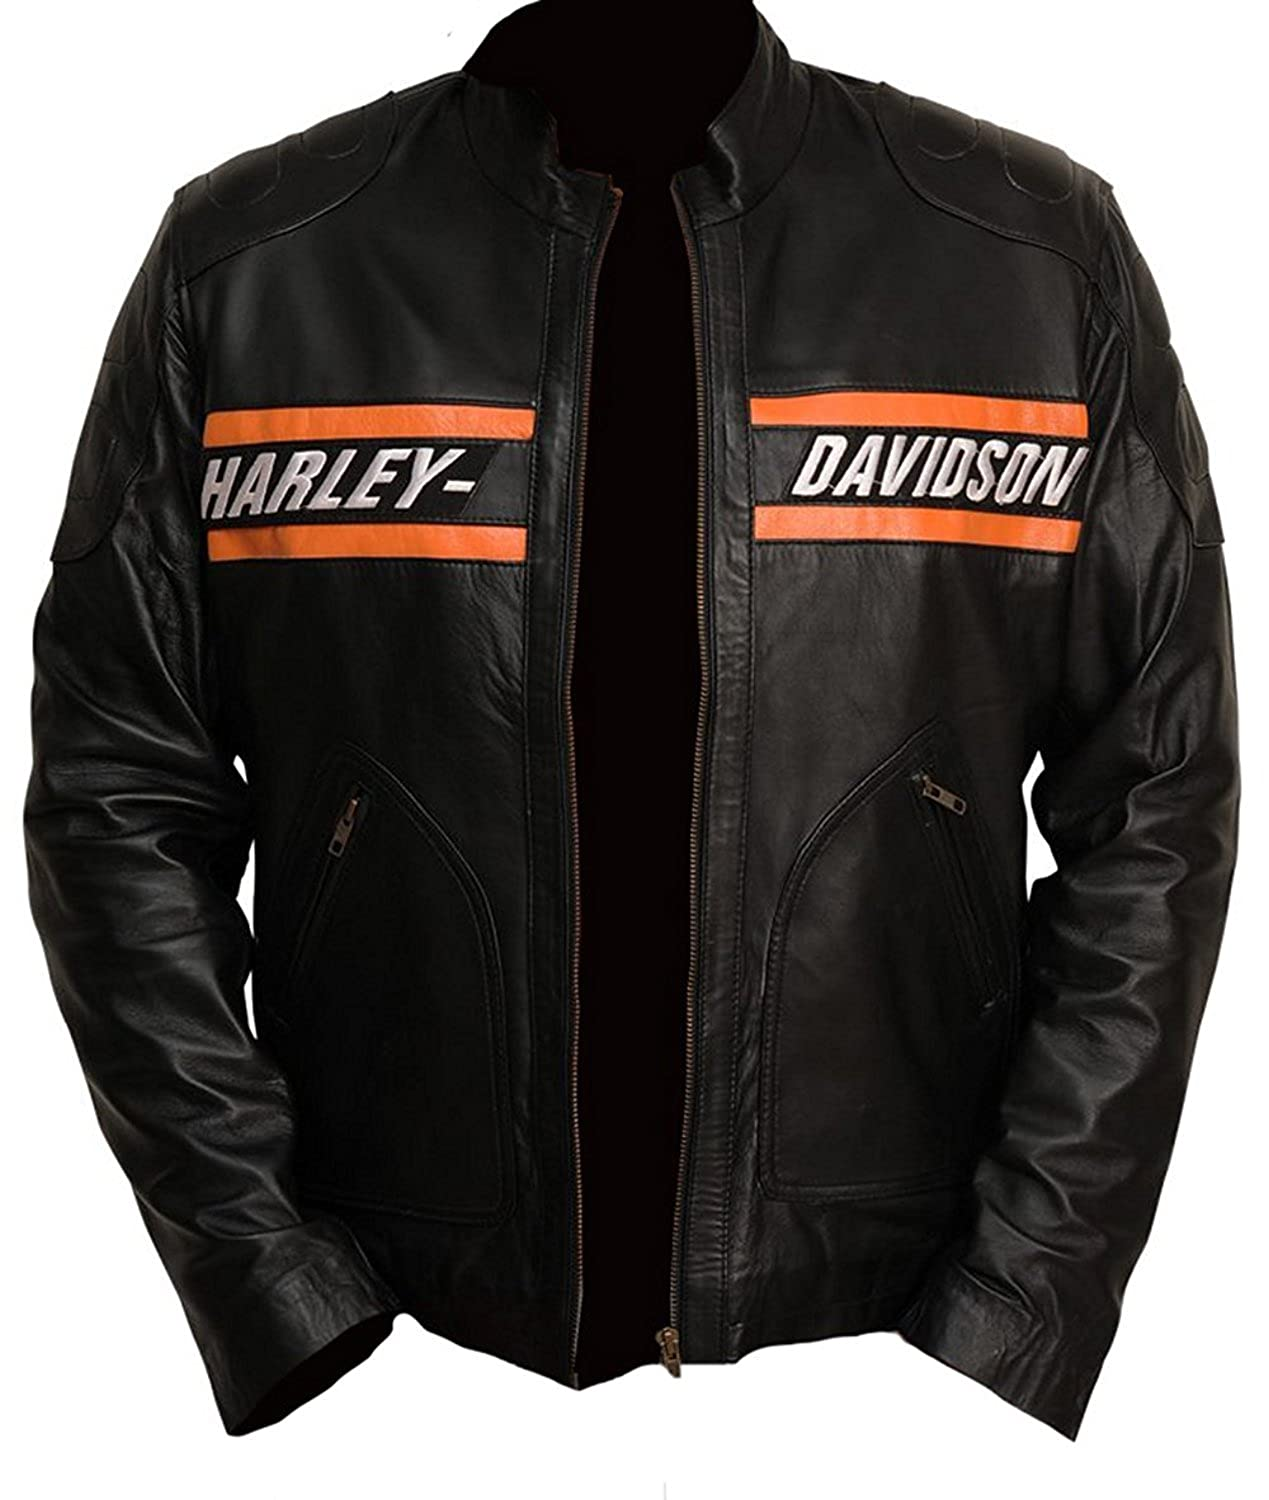 Harley Davidson Motorcycle Goldberg Leather Biker Real Jacket